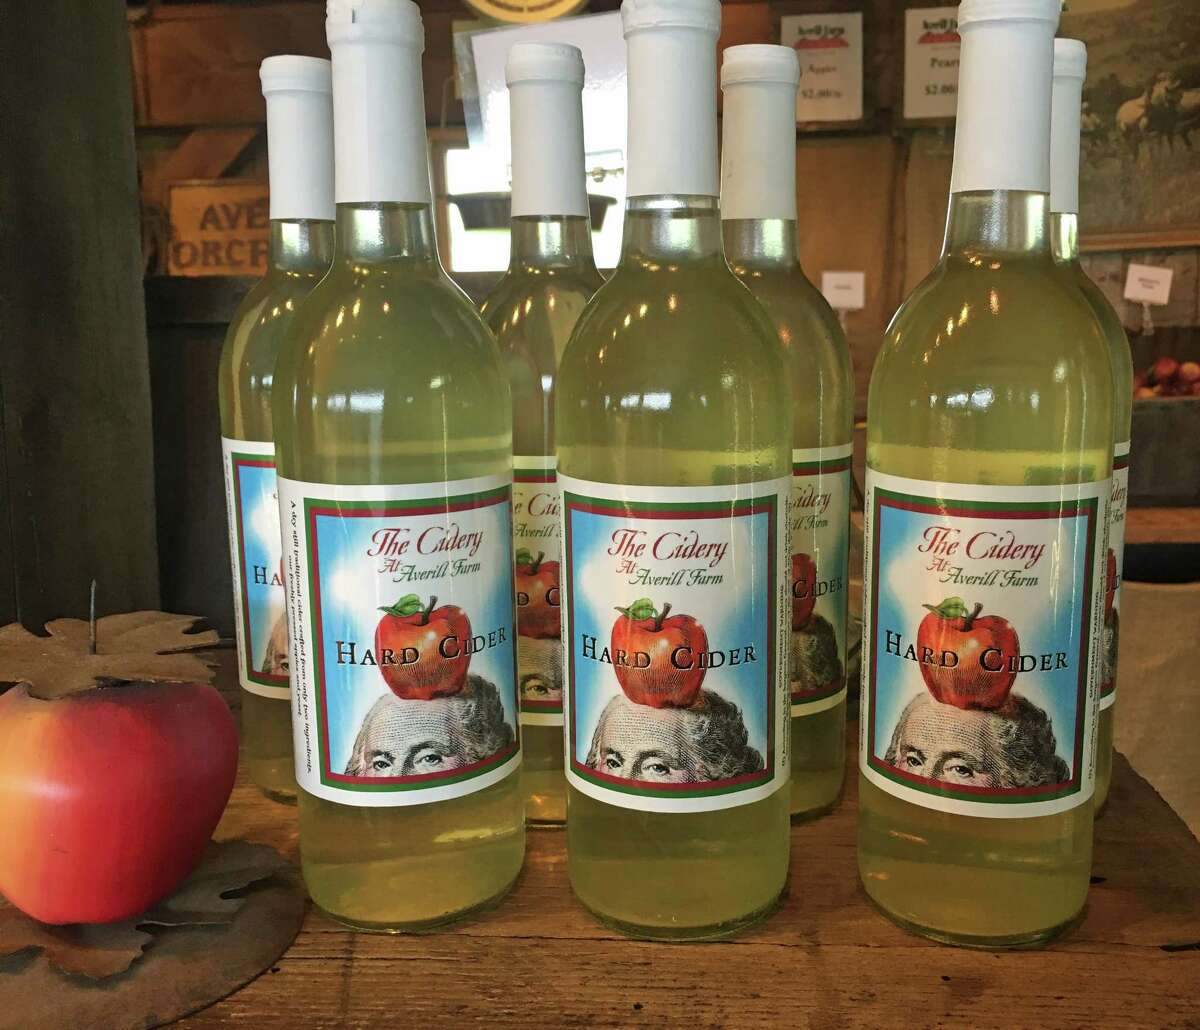 Averill Farm- Washington Depot Hard cider available for sale at the New Milford farmers' market and theWashington Depot farmers' market at the Judy Black Park on Saturdays, as well as theSouthbury farmers' market on Thursdays and the New Milford Town Green on Saturdays.